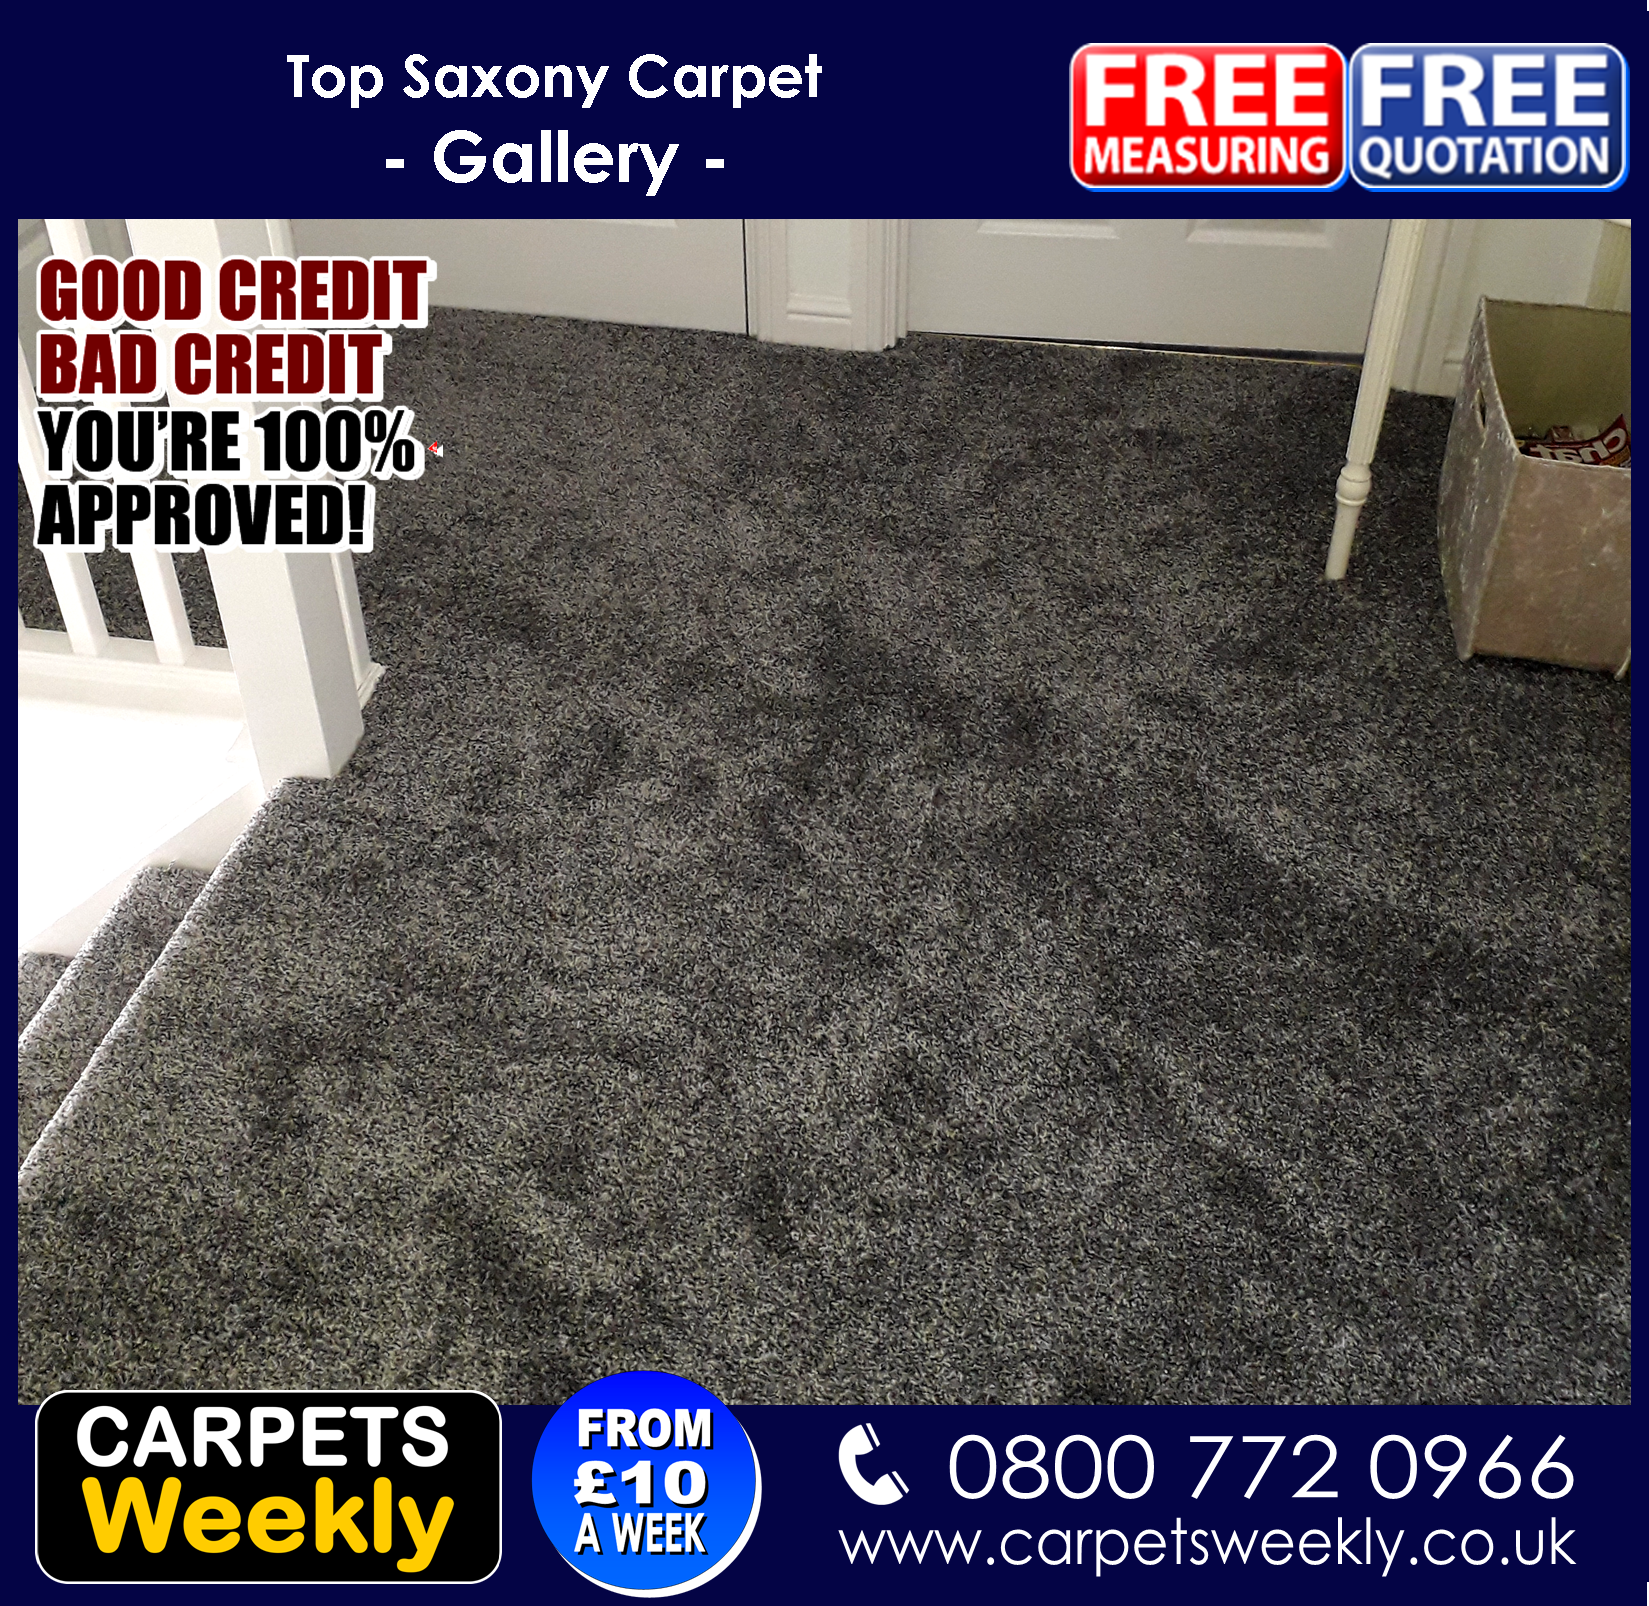 Recent work from Carpets Weekly